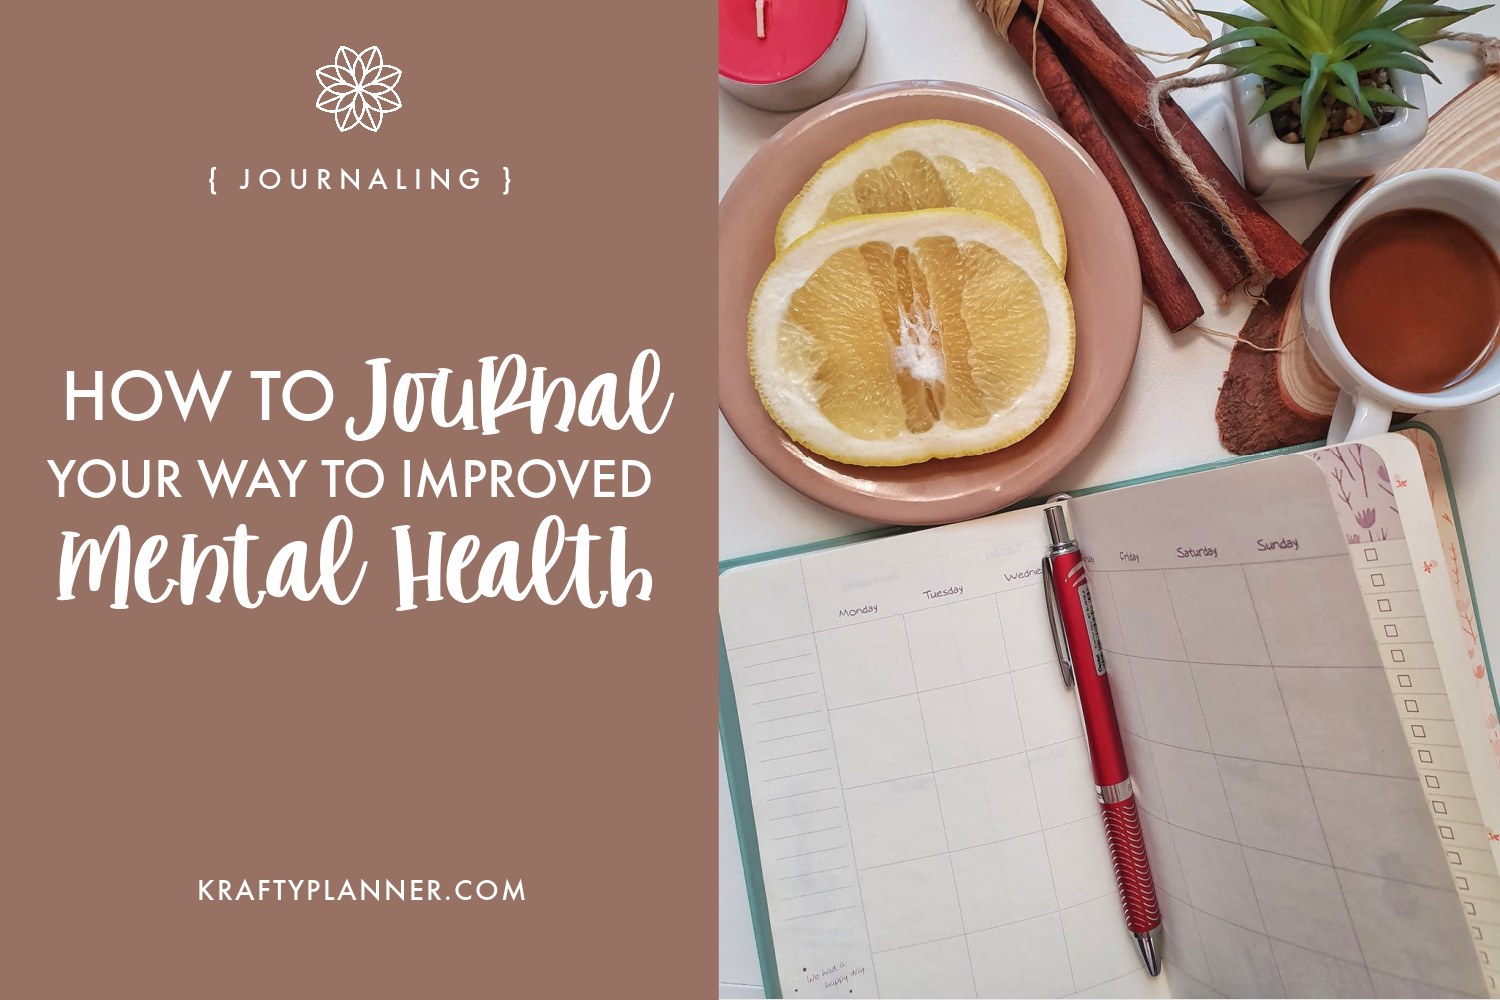 How to Journal Your Way to Improved Mental Health Main Image.png